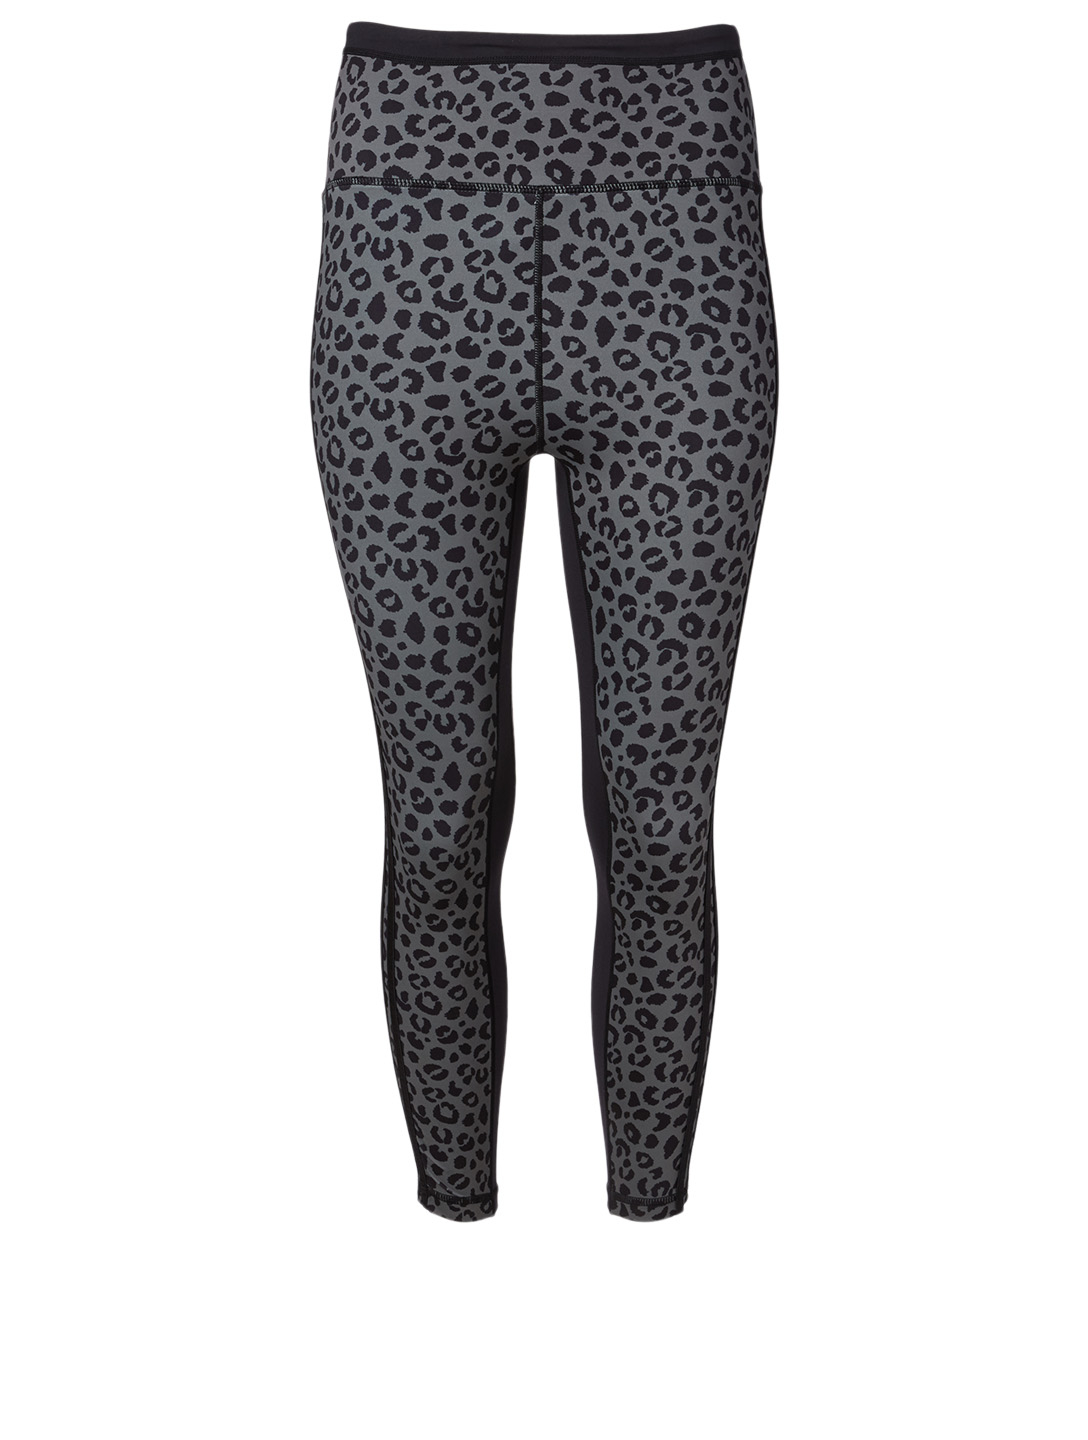 ALL FENIX Black Jagger High Waisted Cropped Leggings In Leopard Print Women's Green